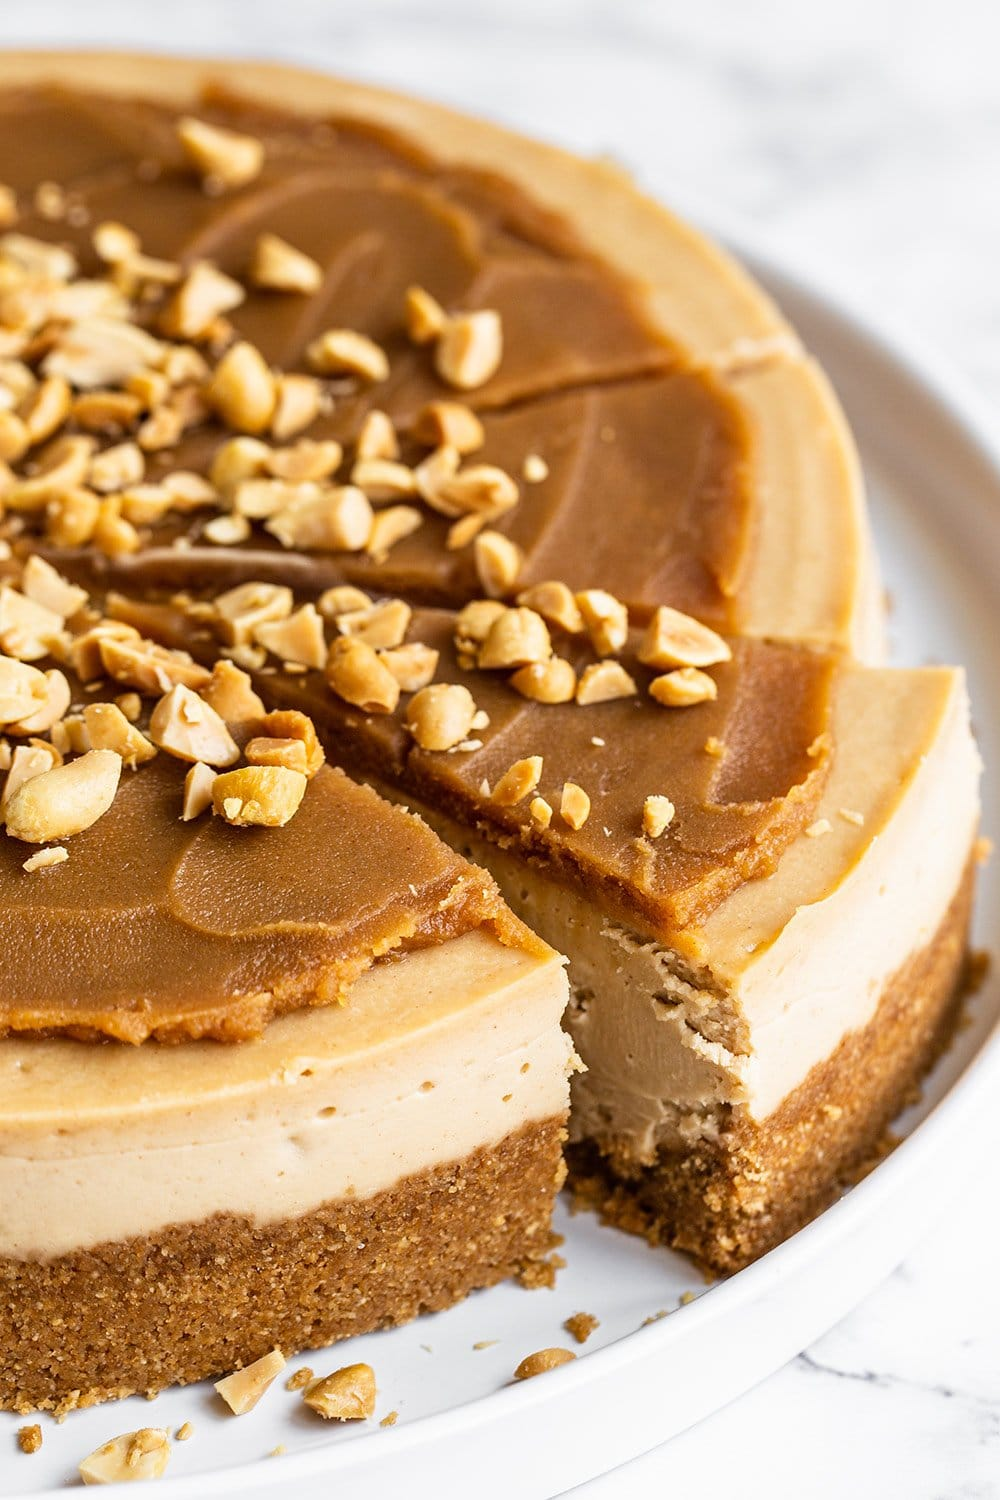 slice being served of ultimate peanut butter cheesecake recipe